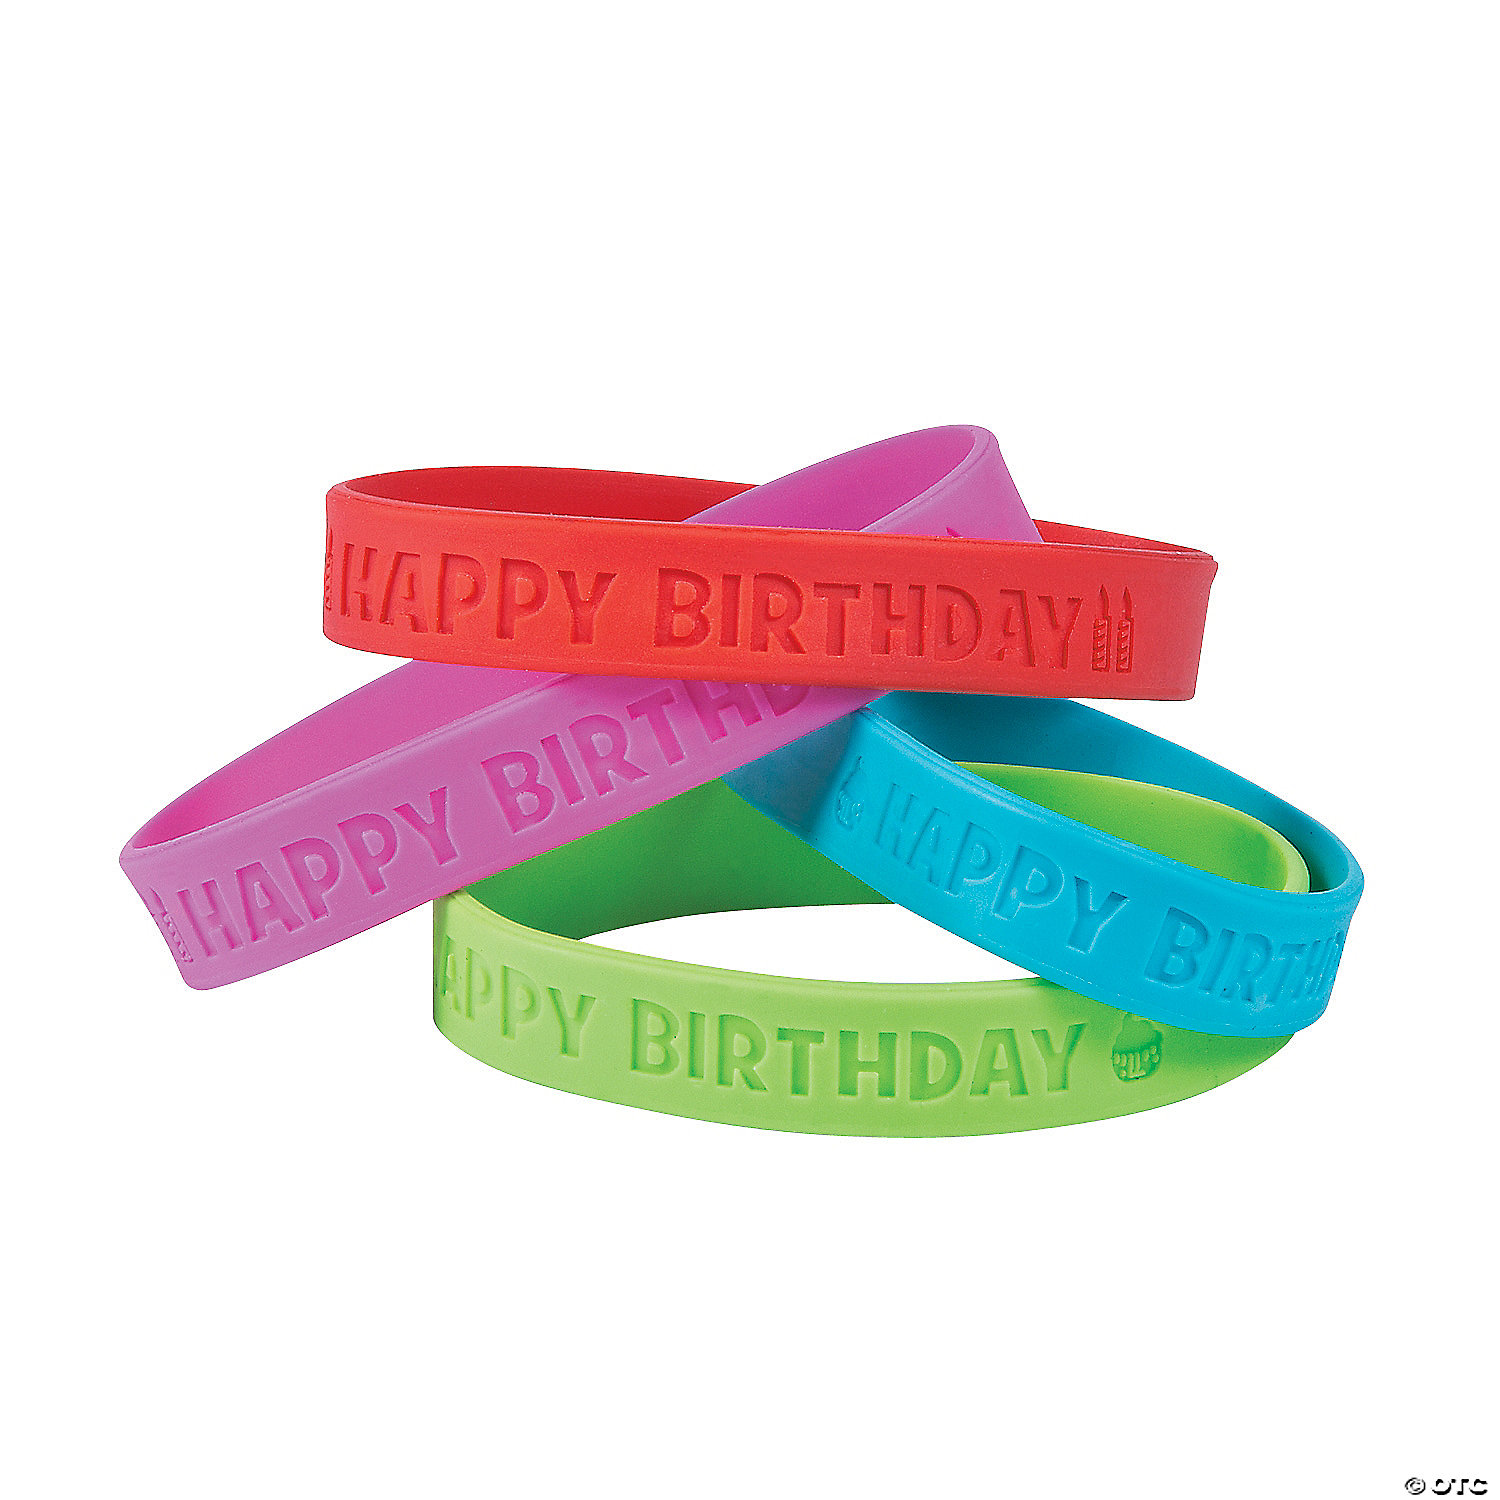 wristbands oblacoder bracelets clearimage bracelet box week ribbon vcp red beautiful